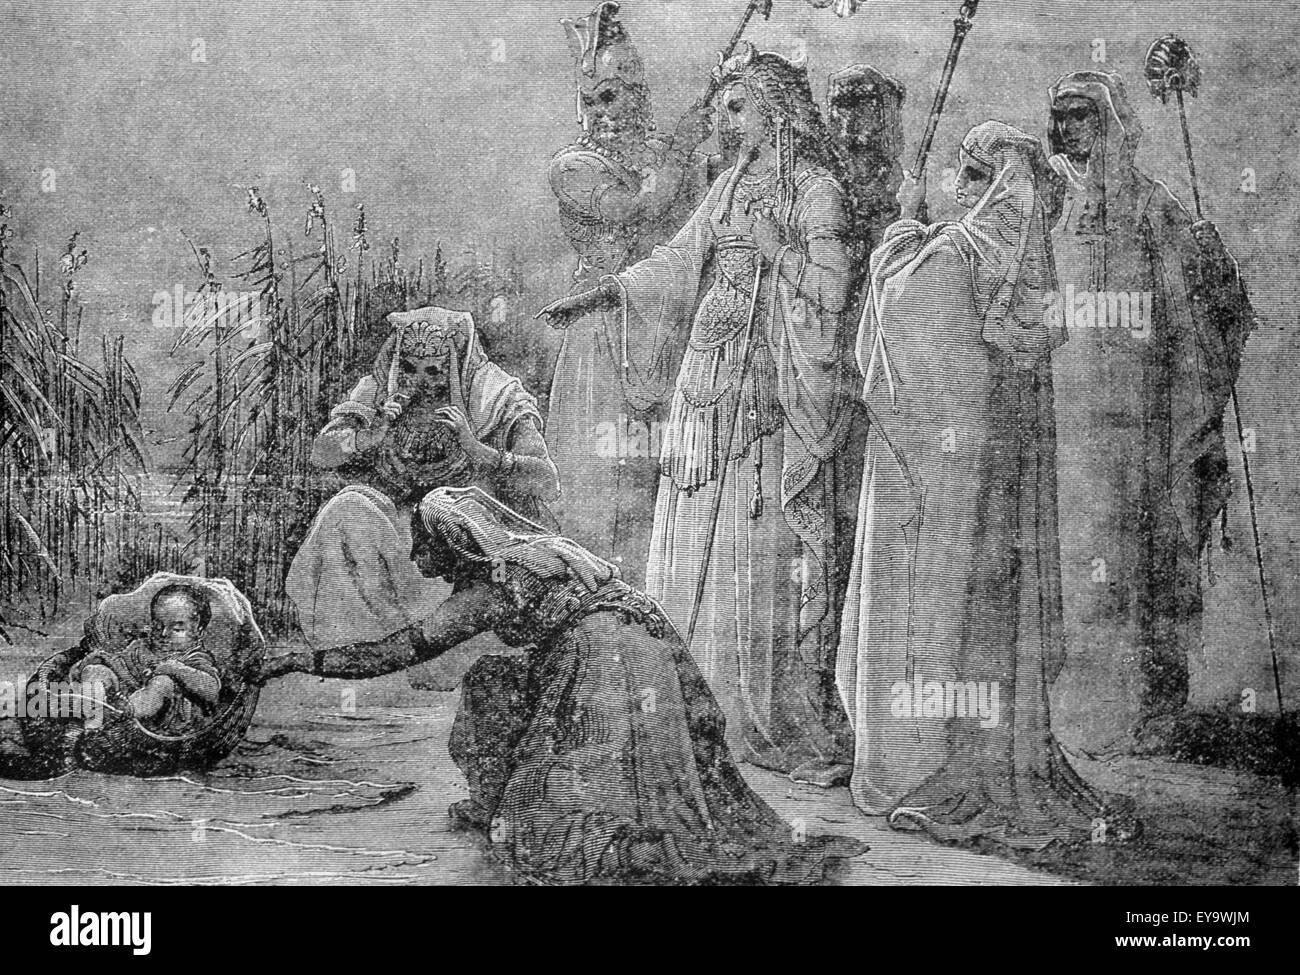 Lithograph of the infant Moses found by the pharaoh's daughter - Stock Image